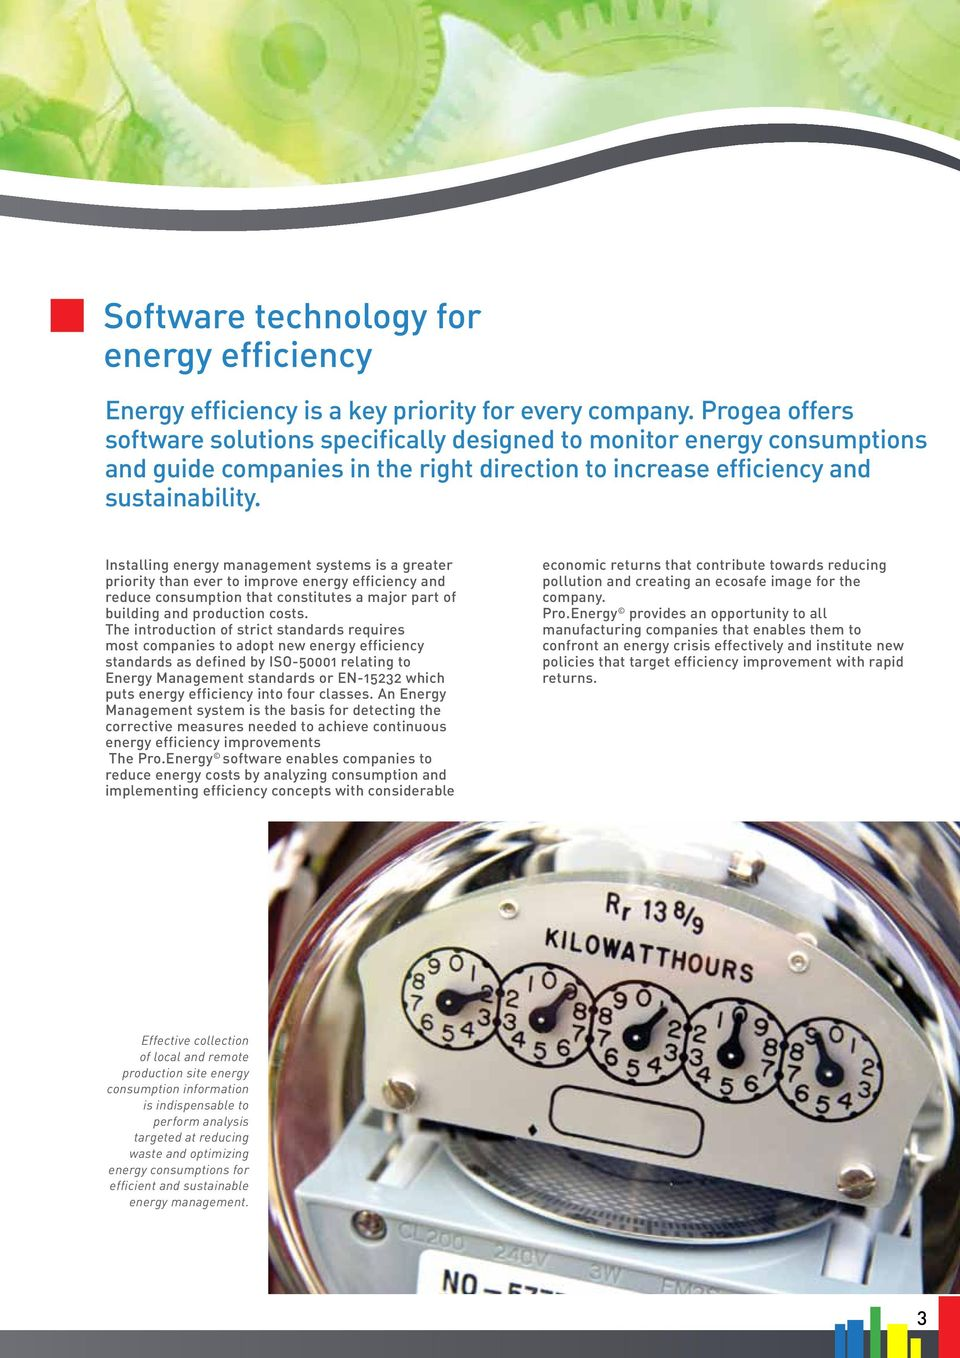 Installing energy management systems is a greater priority than ever to improve energy efficiency and reduce consumption that constitutes a major part of building and production costs.